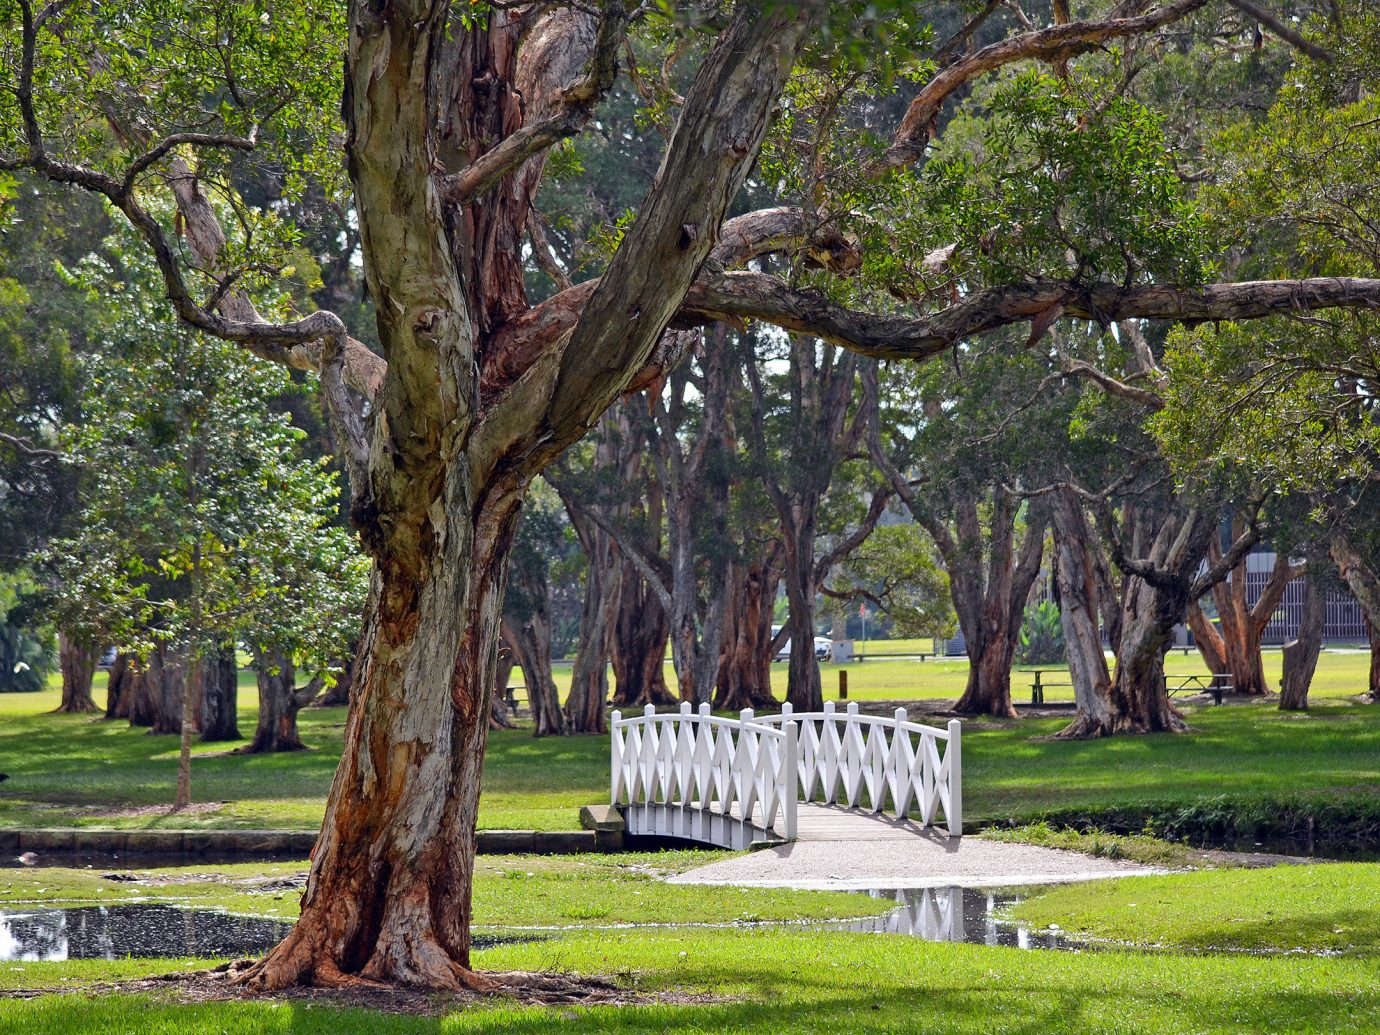 City Outdoors + Adventure Sydney grass tree outdoor park Nature plant woody plant grove field lawn leaf flora branch Garden landscape spring plantation outdoor structure estate shrub grassy landscaping woodland bayou lush